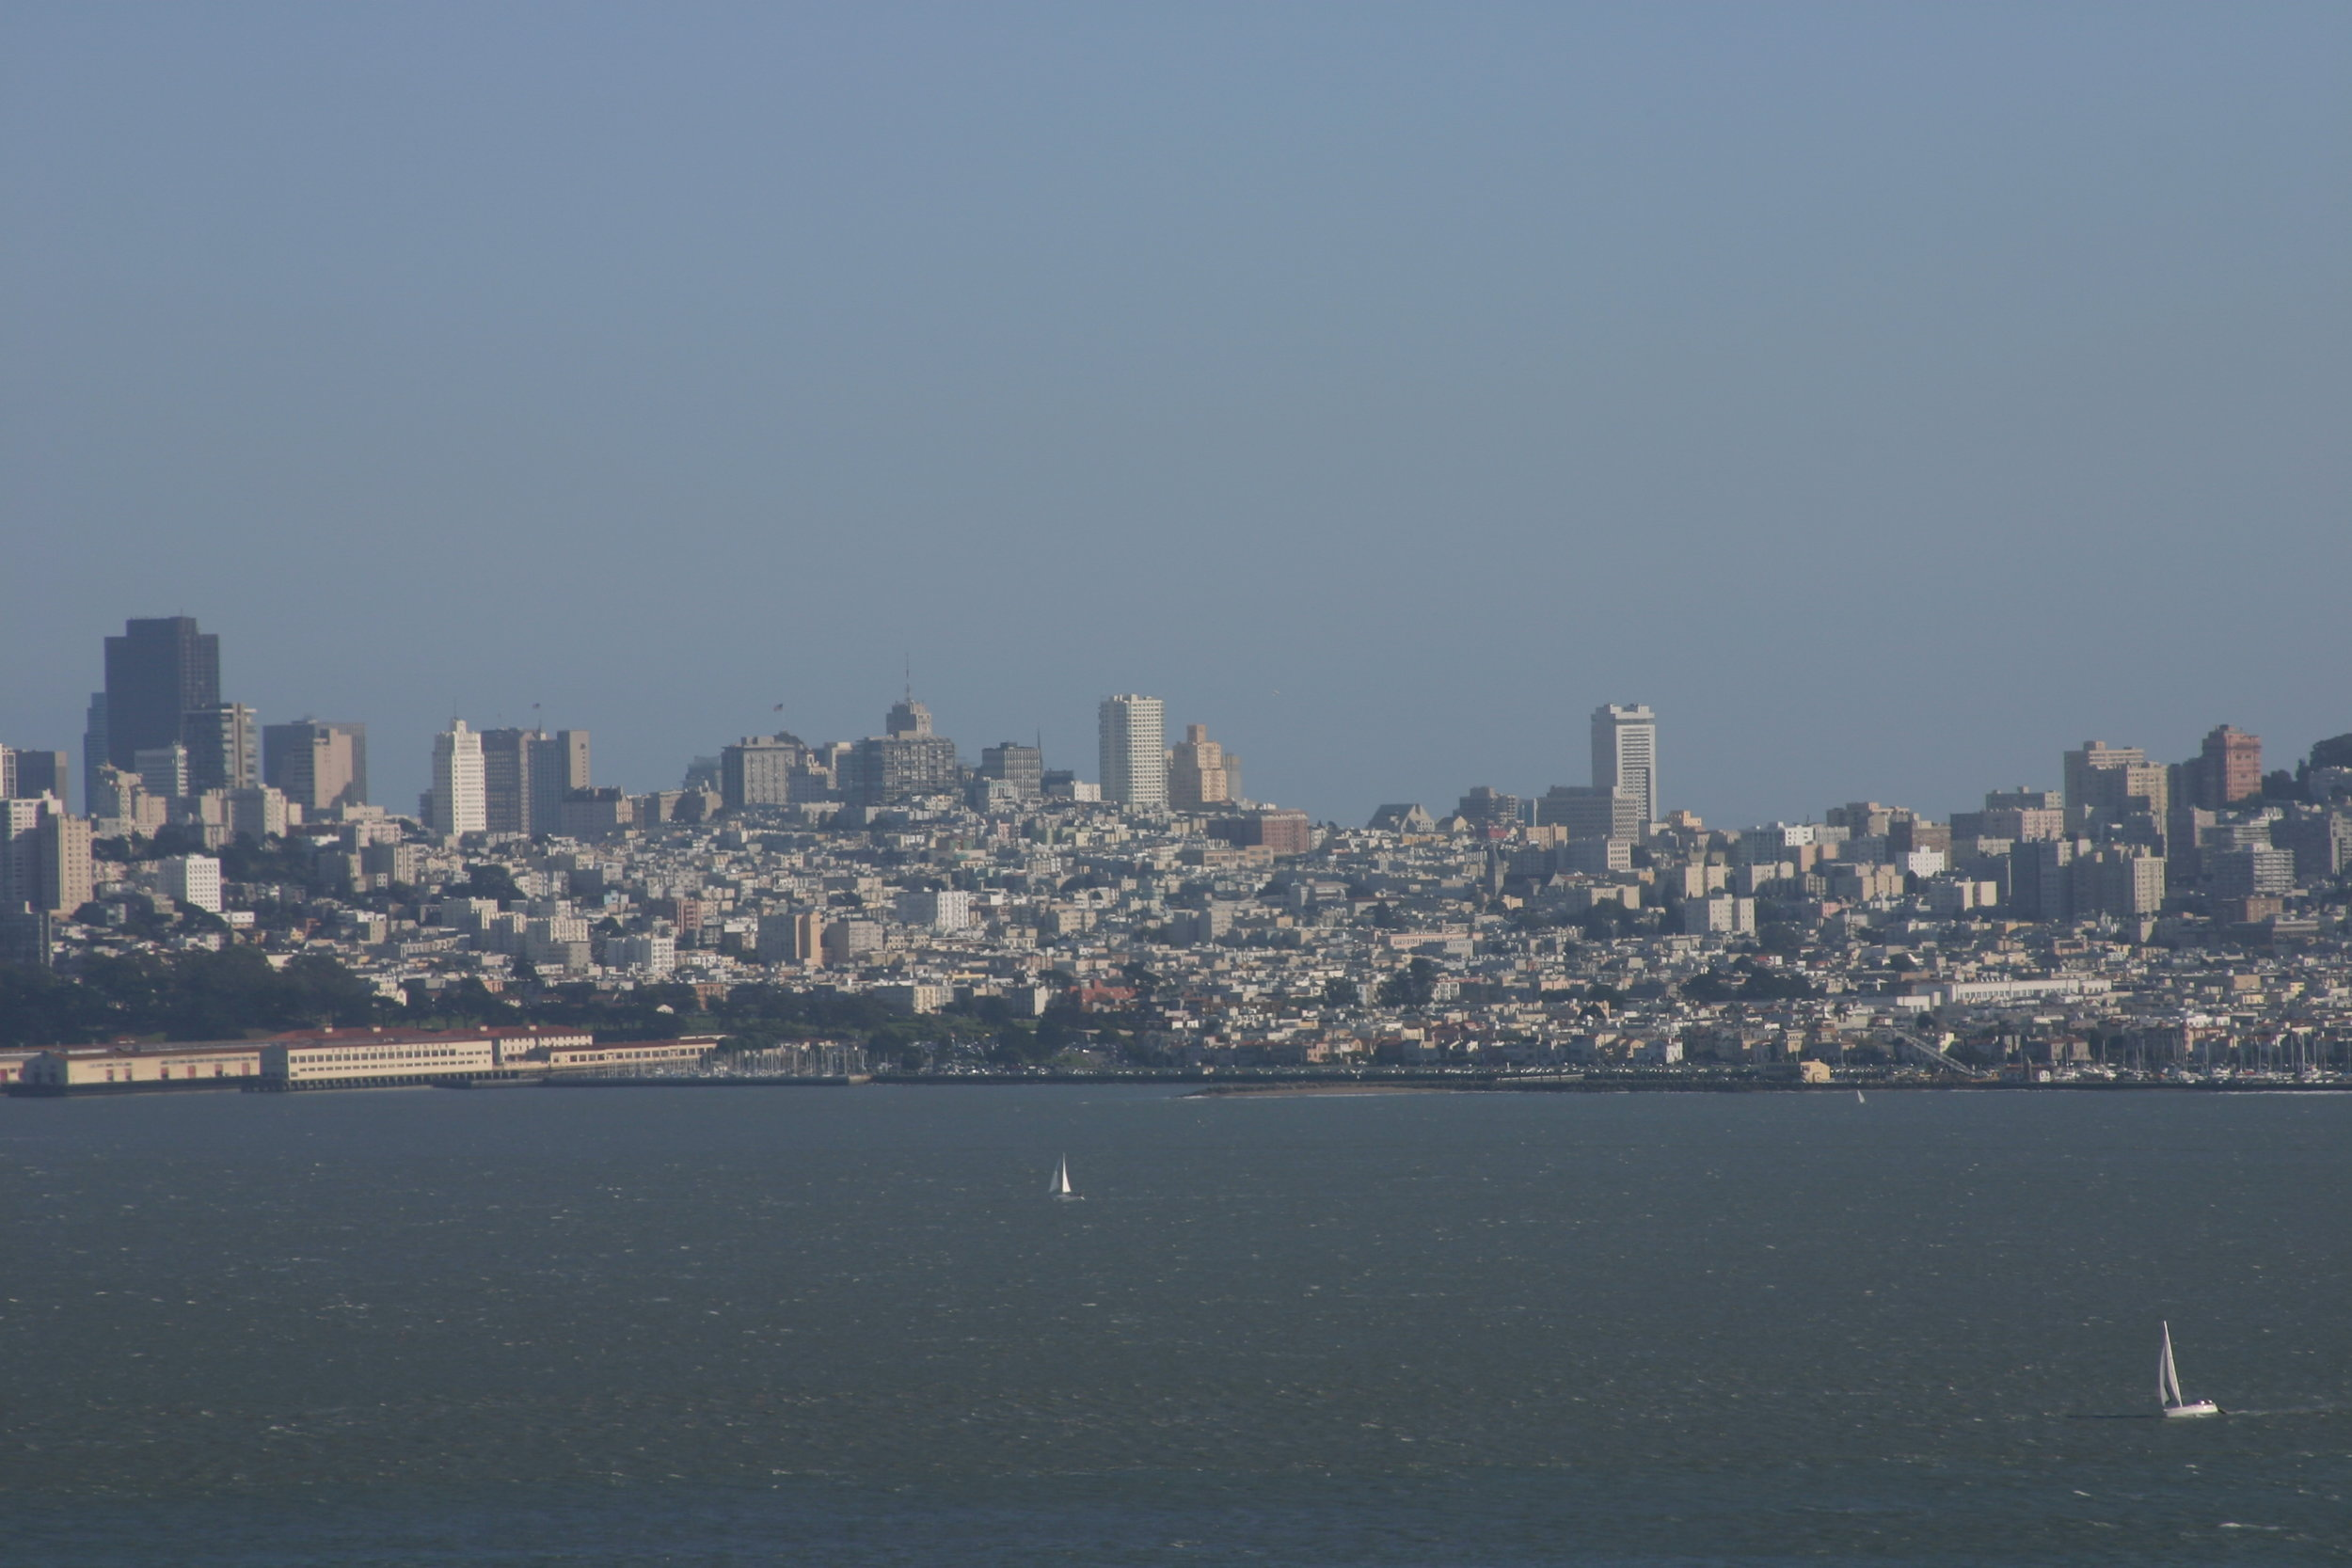 San Francisco from Marin, February 2012, Photo Credit: Kate Gallery